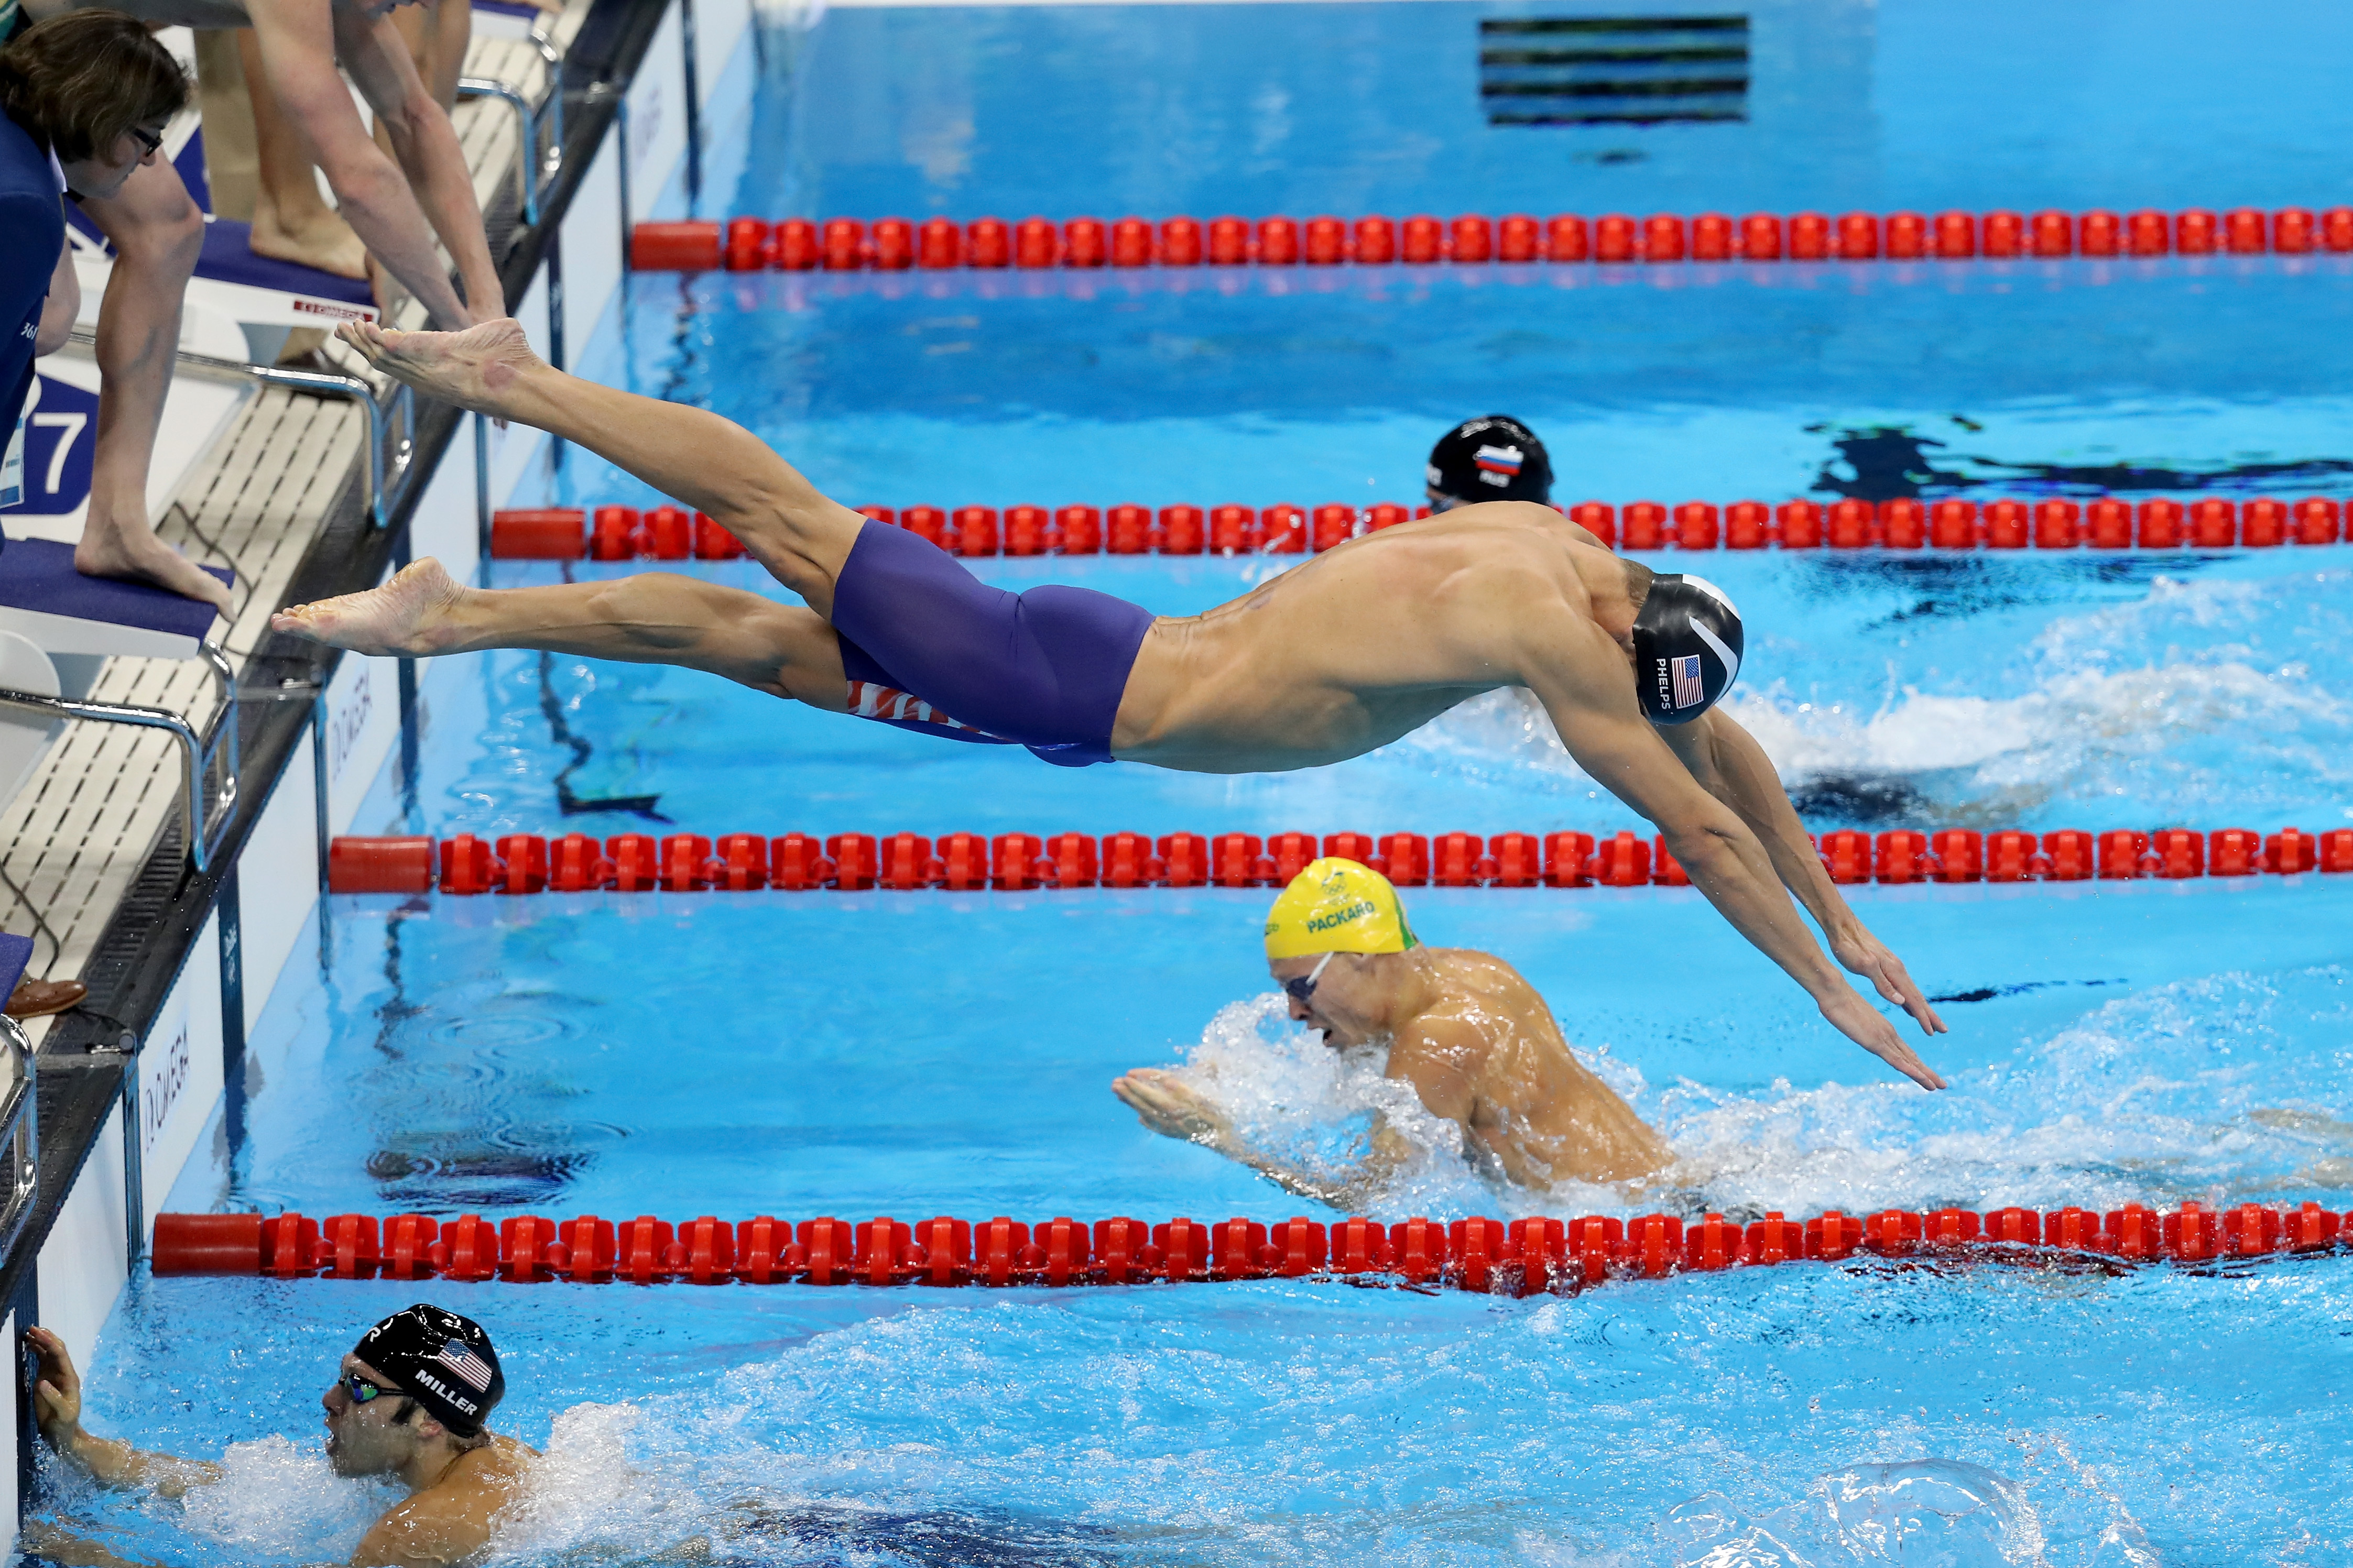 RIO DE JANEIRO, BRAZIL - AUGUST 13:  Michael Phelps of the United States competes in the Men's 4 x 100m Medley Relay Final on Day 8 of the Rio 2016 Olympic Games at the Olympic Aquatics Stadium on August 13, 2016 in Rio de Janeiro, Brazil.  (Photo by Rob Carr/Getty Images)